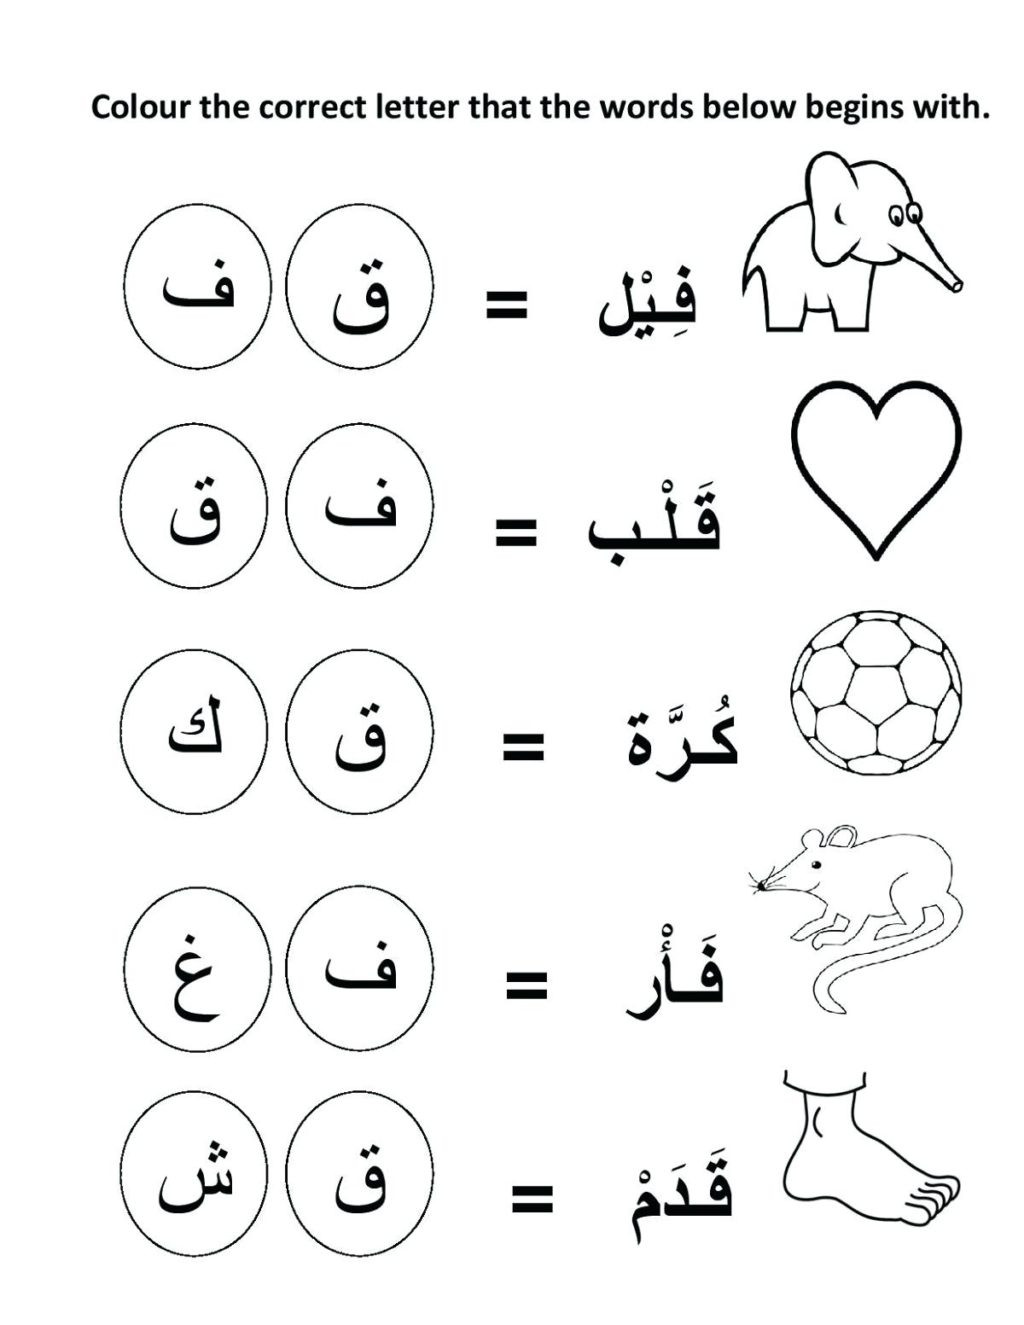 Arabic Alphabet Worksheets Printable Coloring Worksheets Arabic Alphabetoloring Pages Free